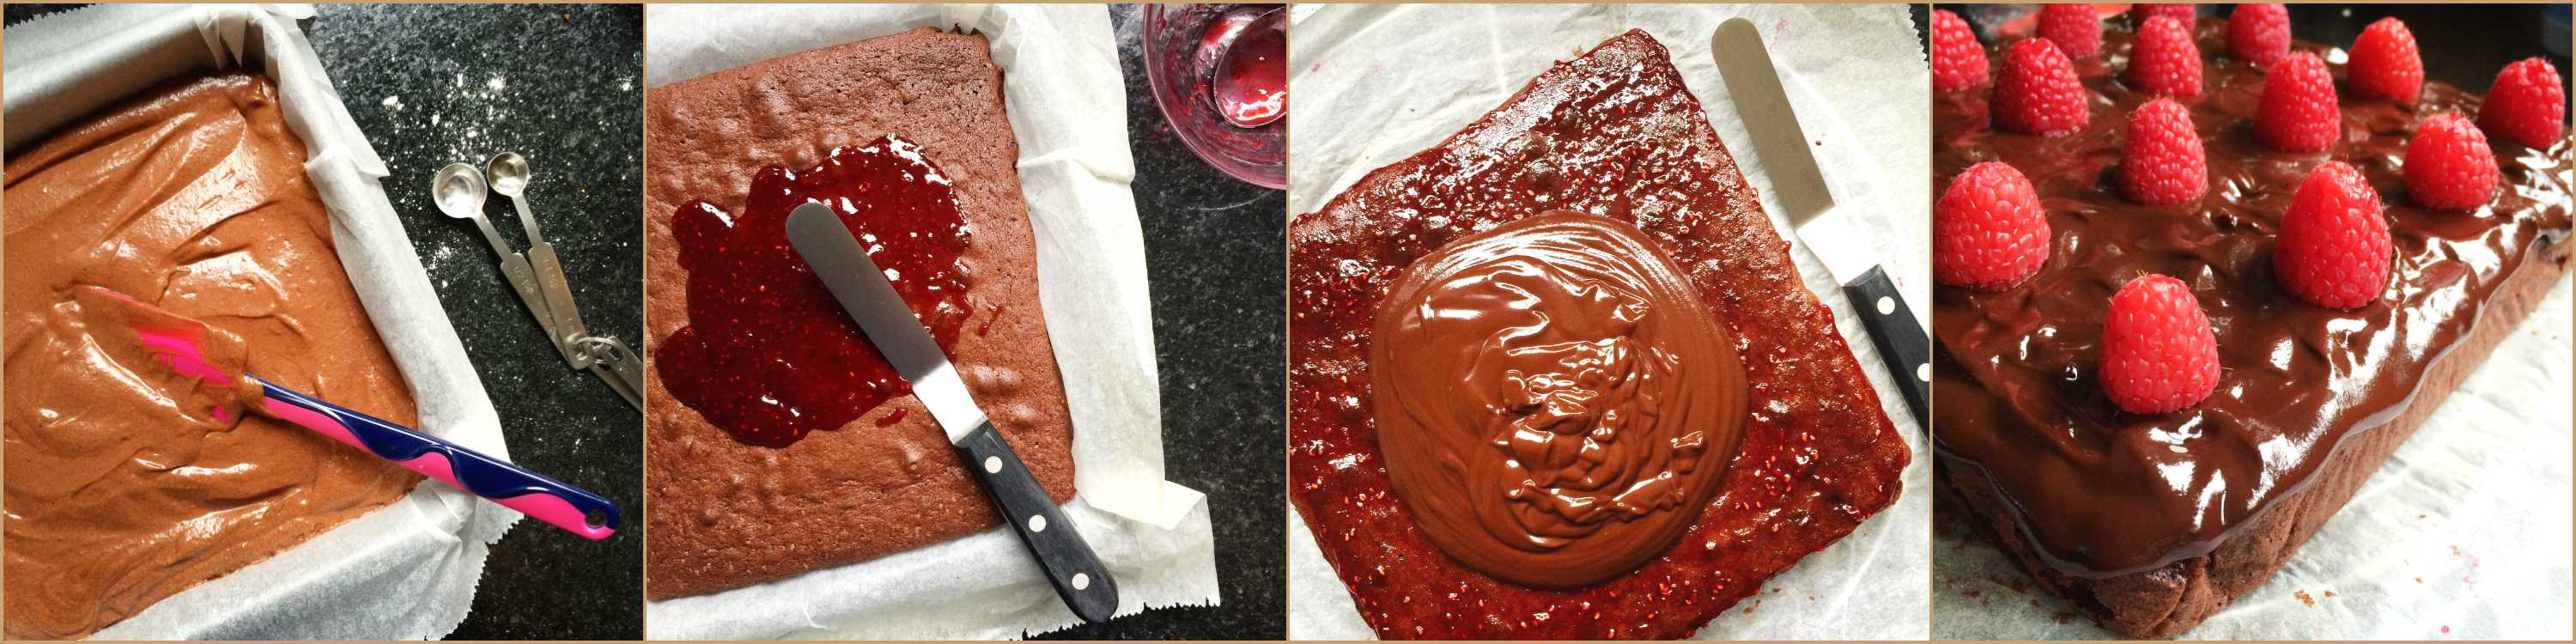 chocolade-plaatcake-collage